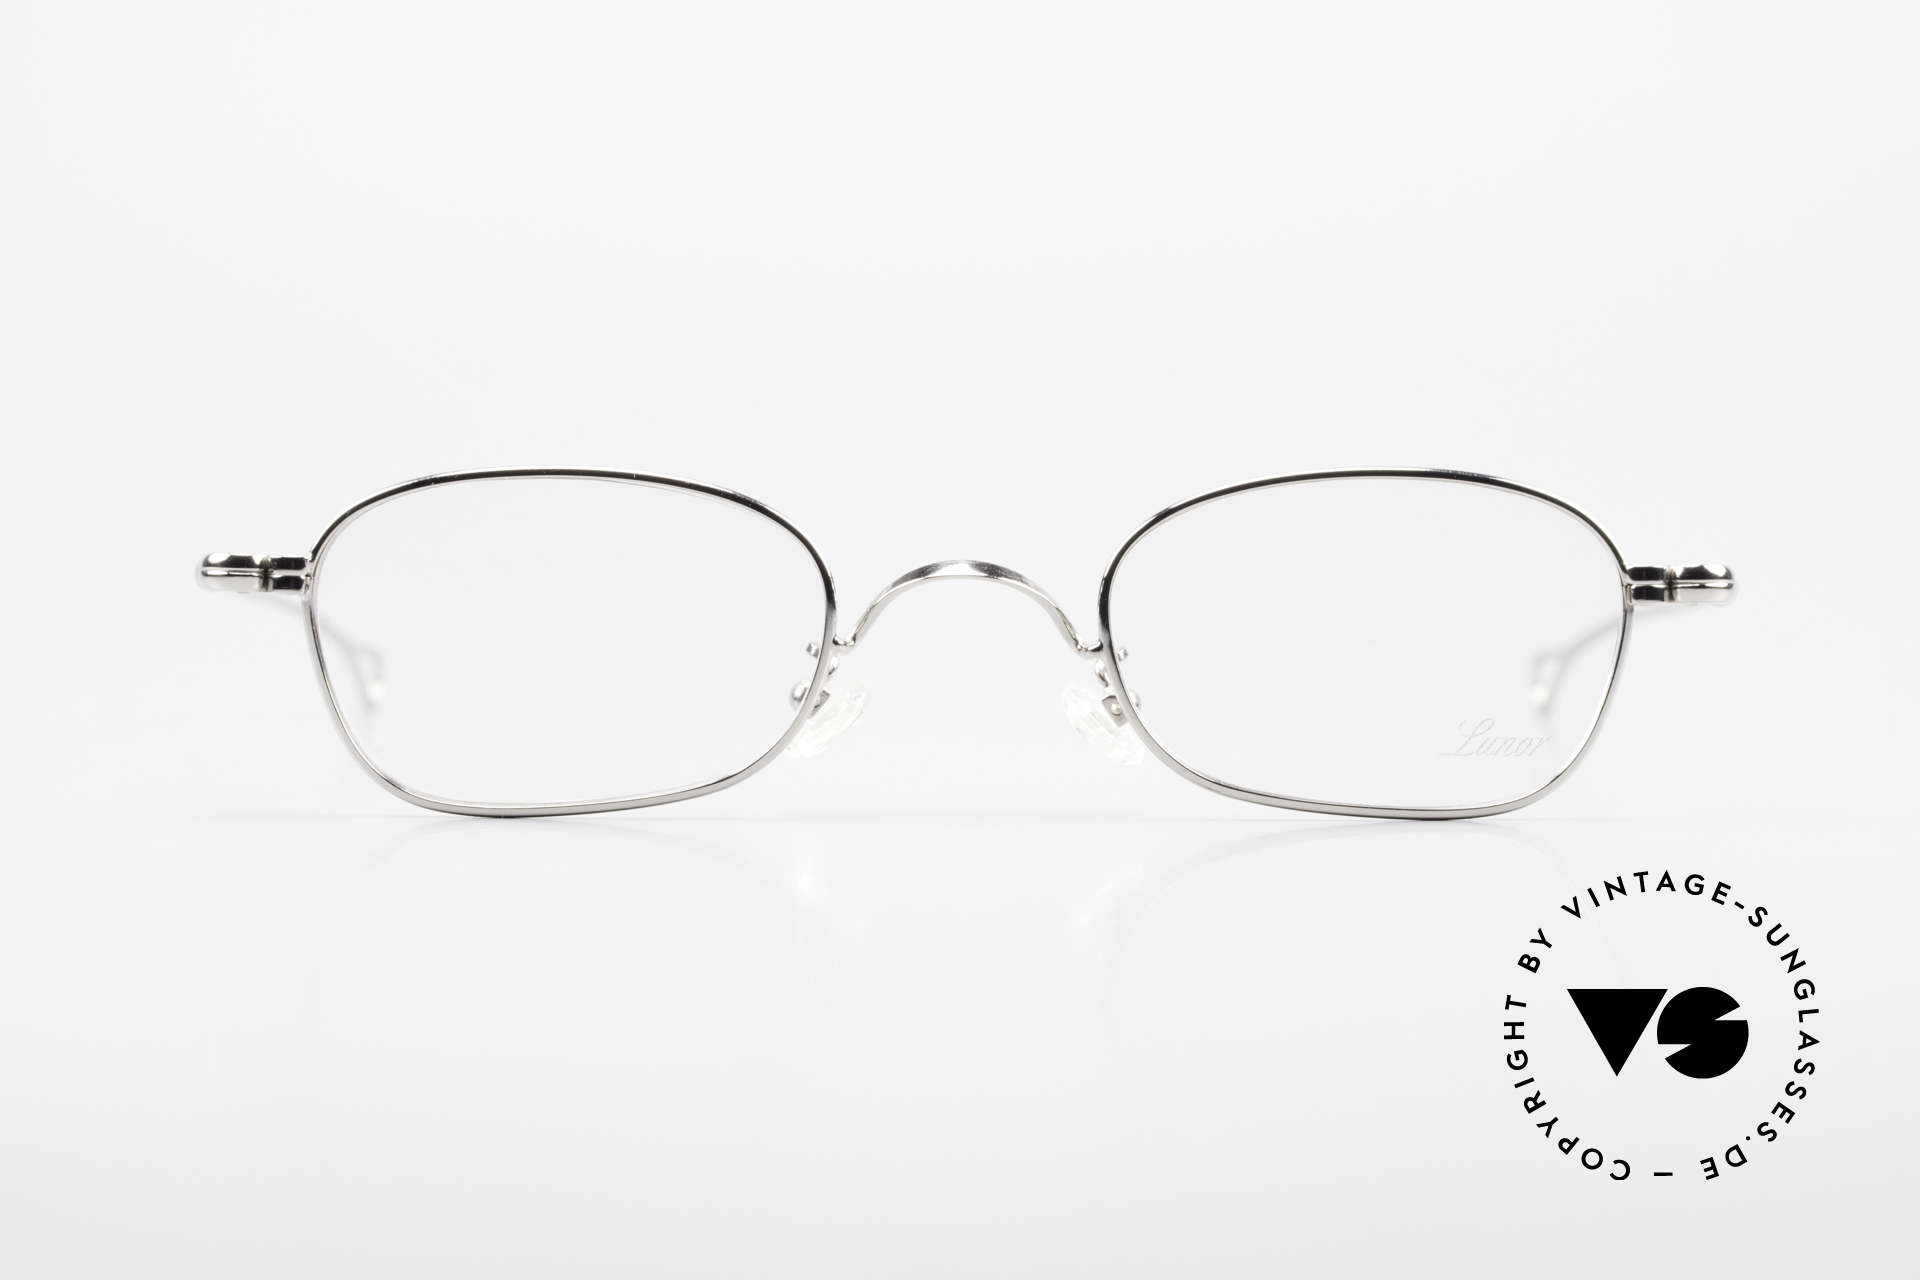 Lunor V 106 Full Metal Frame Platinum, without ostentatious logos (but in a timeless elegance), Made for Men and Women